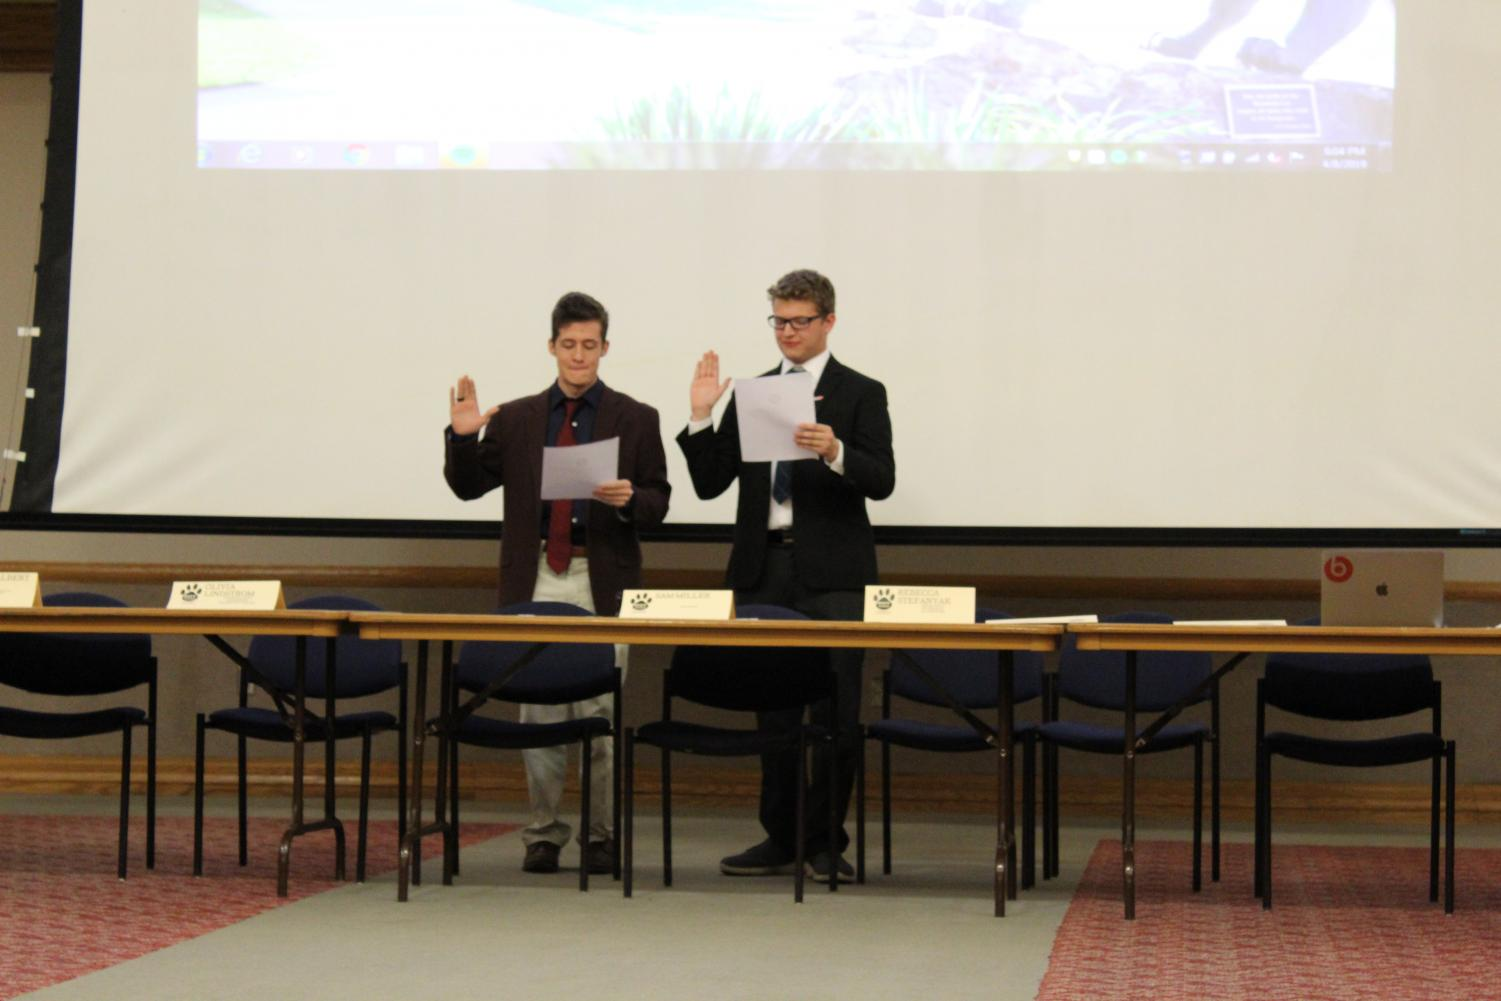 Student government President Devin Seiger was sworn into power by former president Sam Miller in the spring.